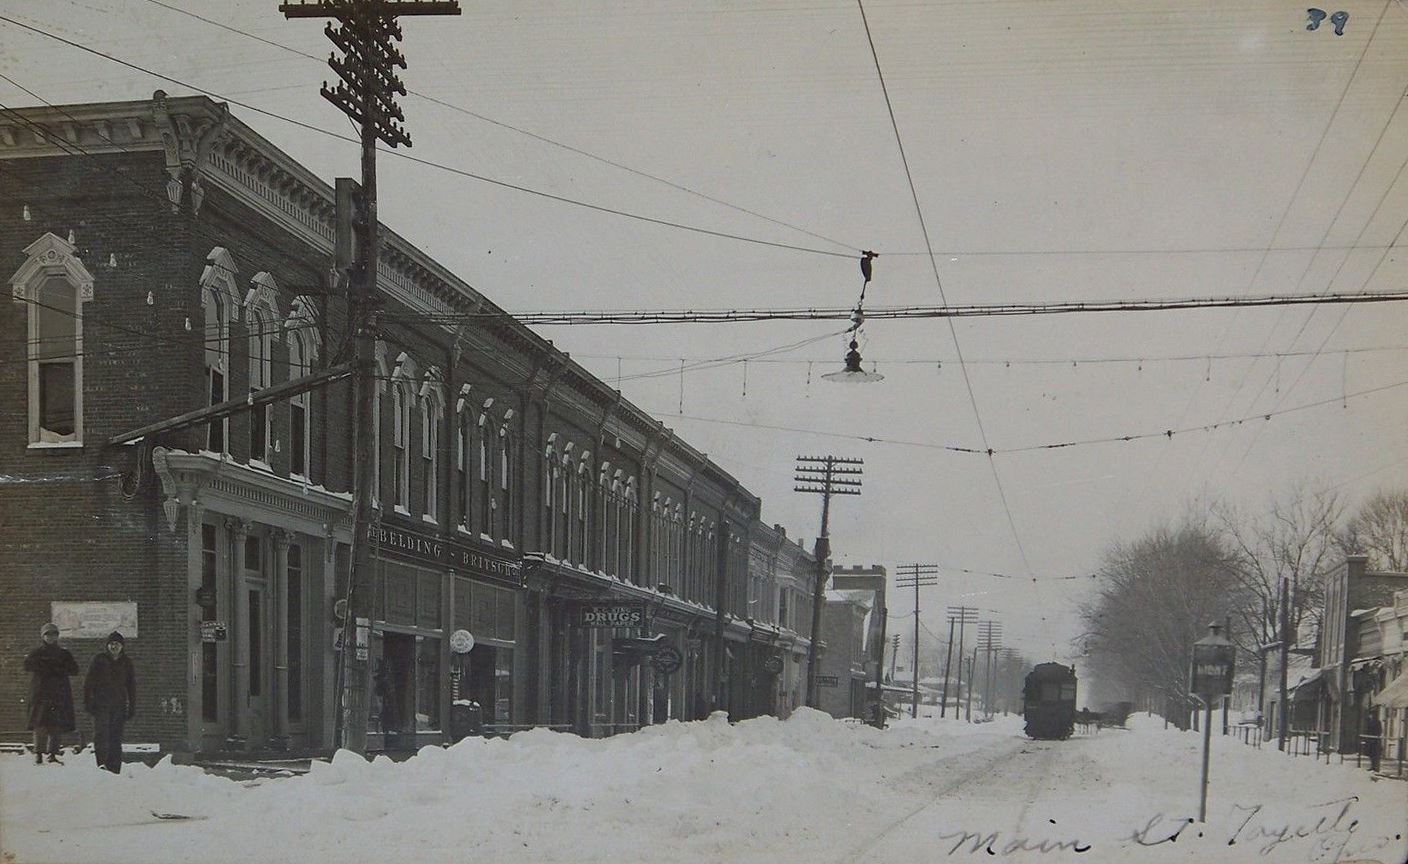 Downtown Fayette - Winter 1910